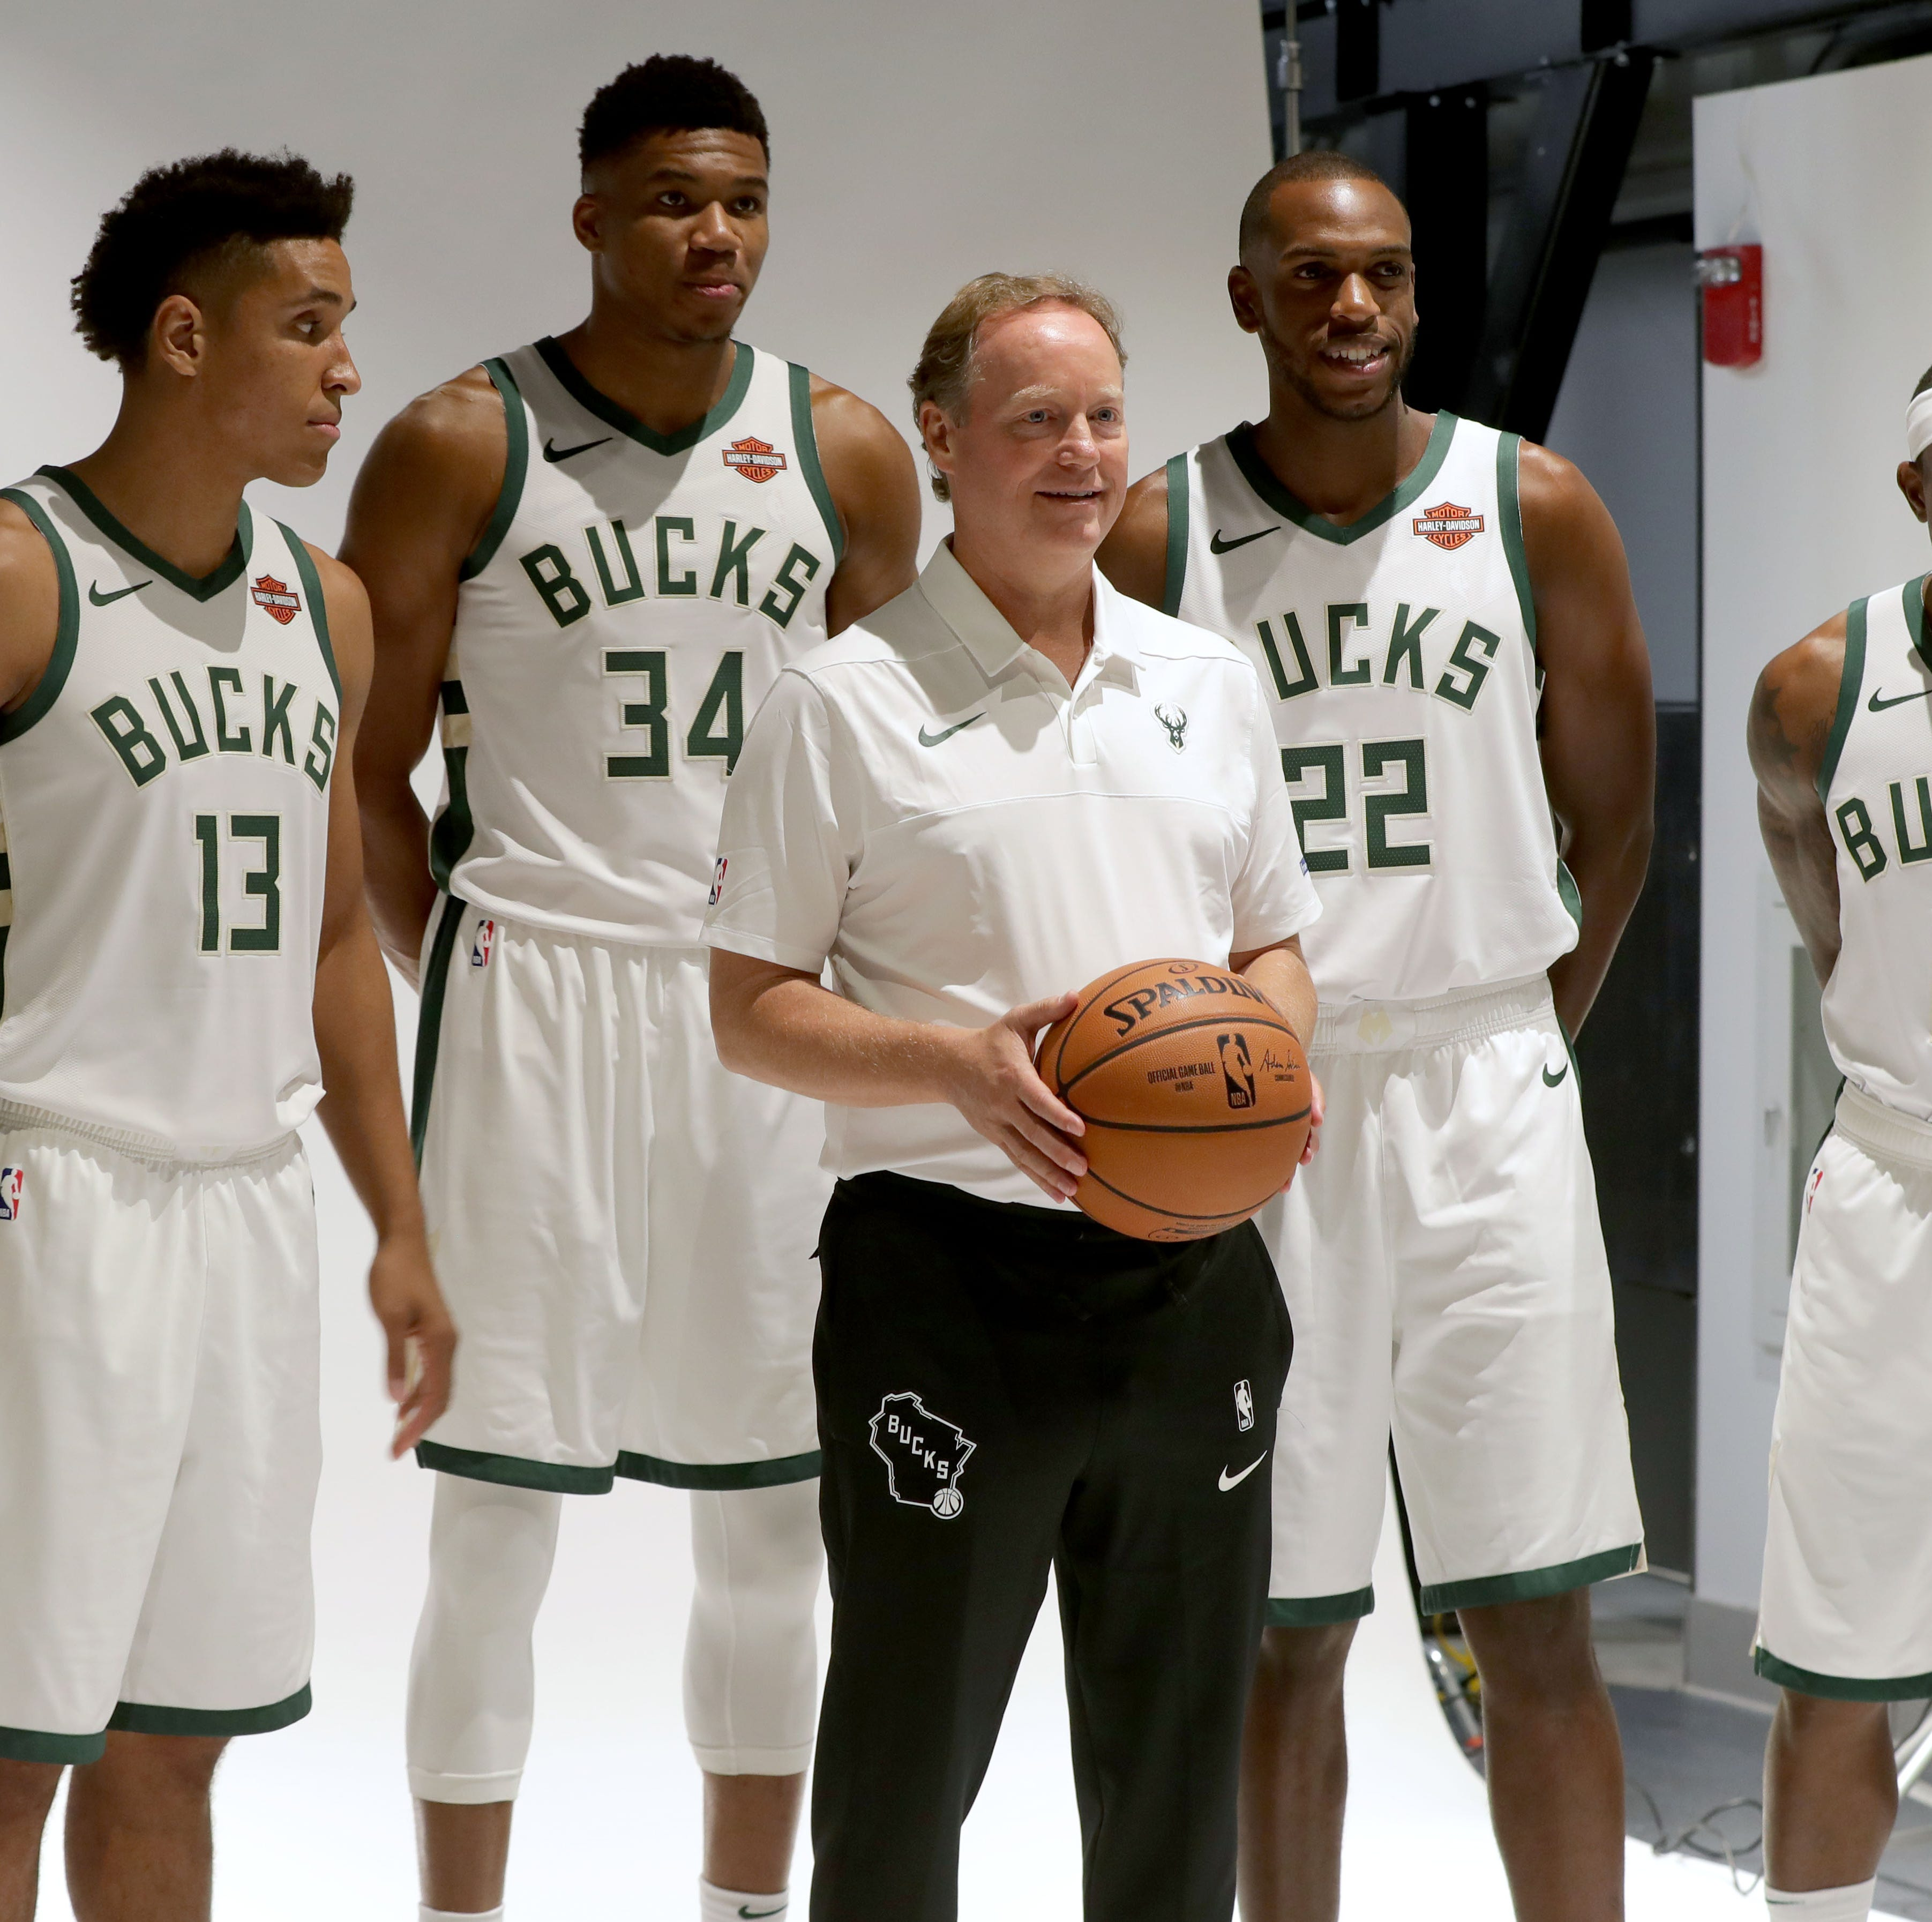 Budenholzer's first practice with Bucks emphasizes transition defense and spacing on offense